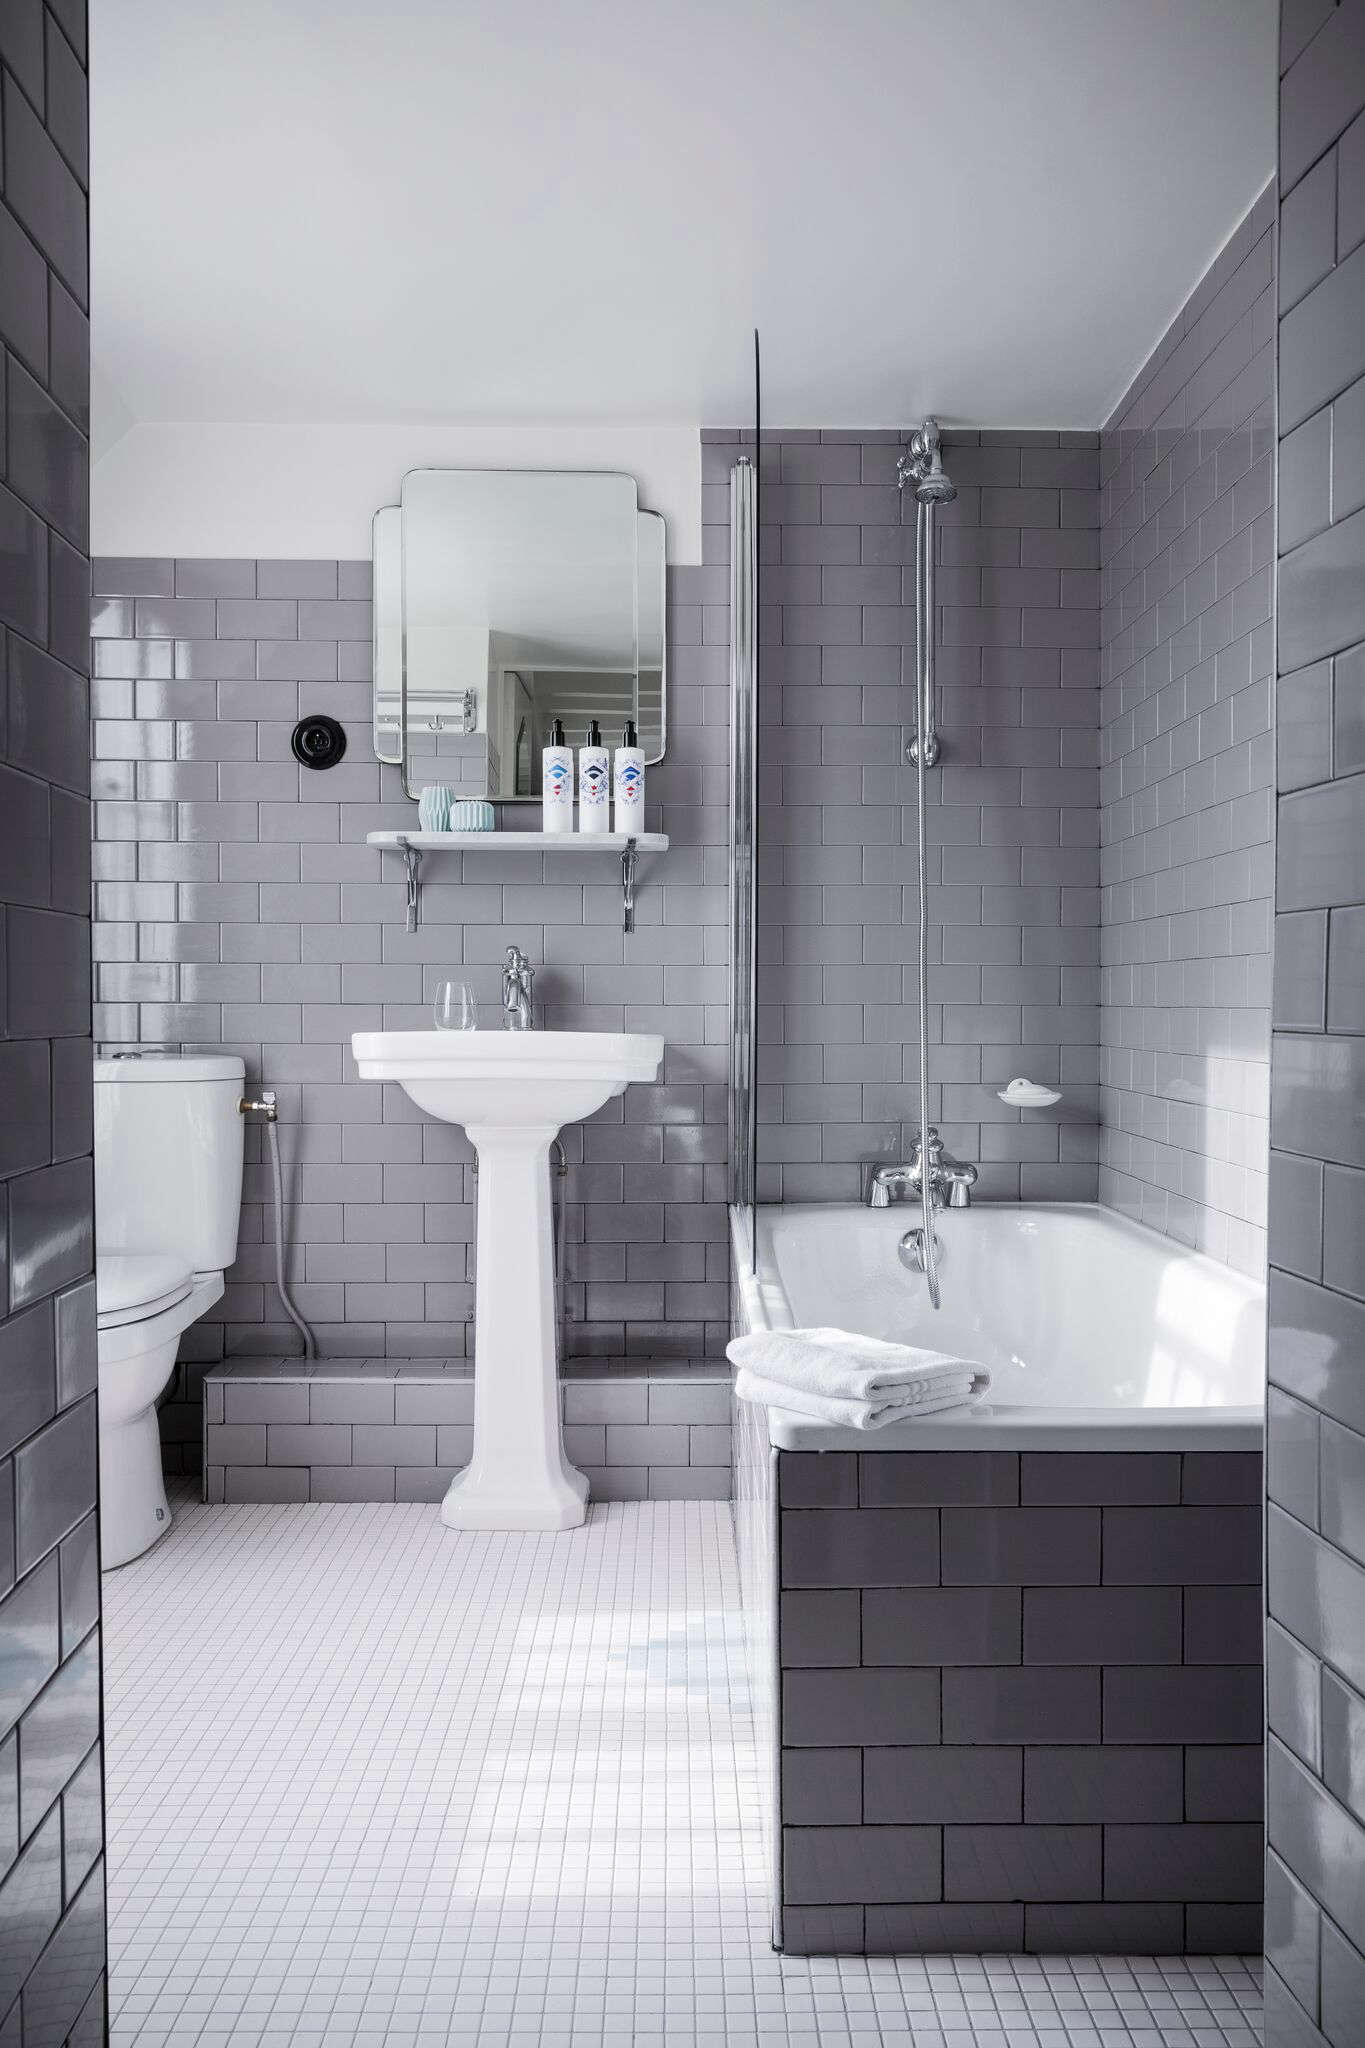 Far from outdated: a gray-tiled built-in bath (with a glass shower wall) at Hotel Panache in Paris; see Hotel Panache: The Power of Jolie Laide Style for more.